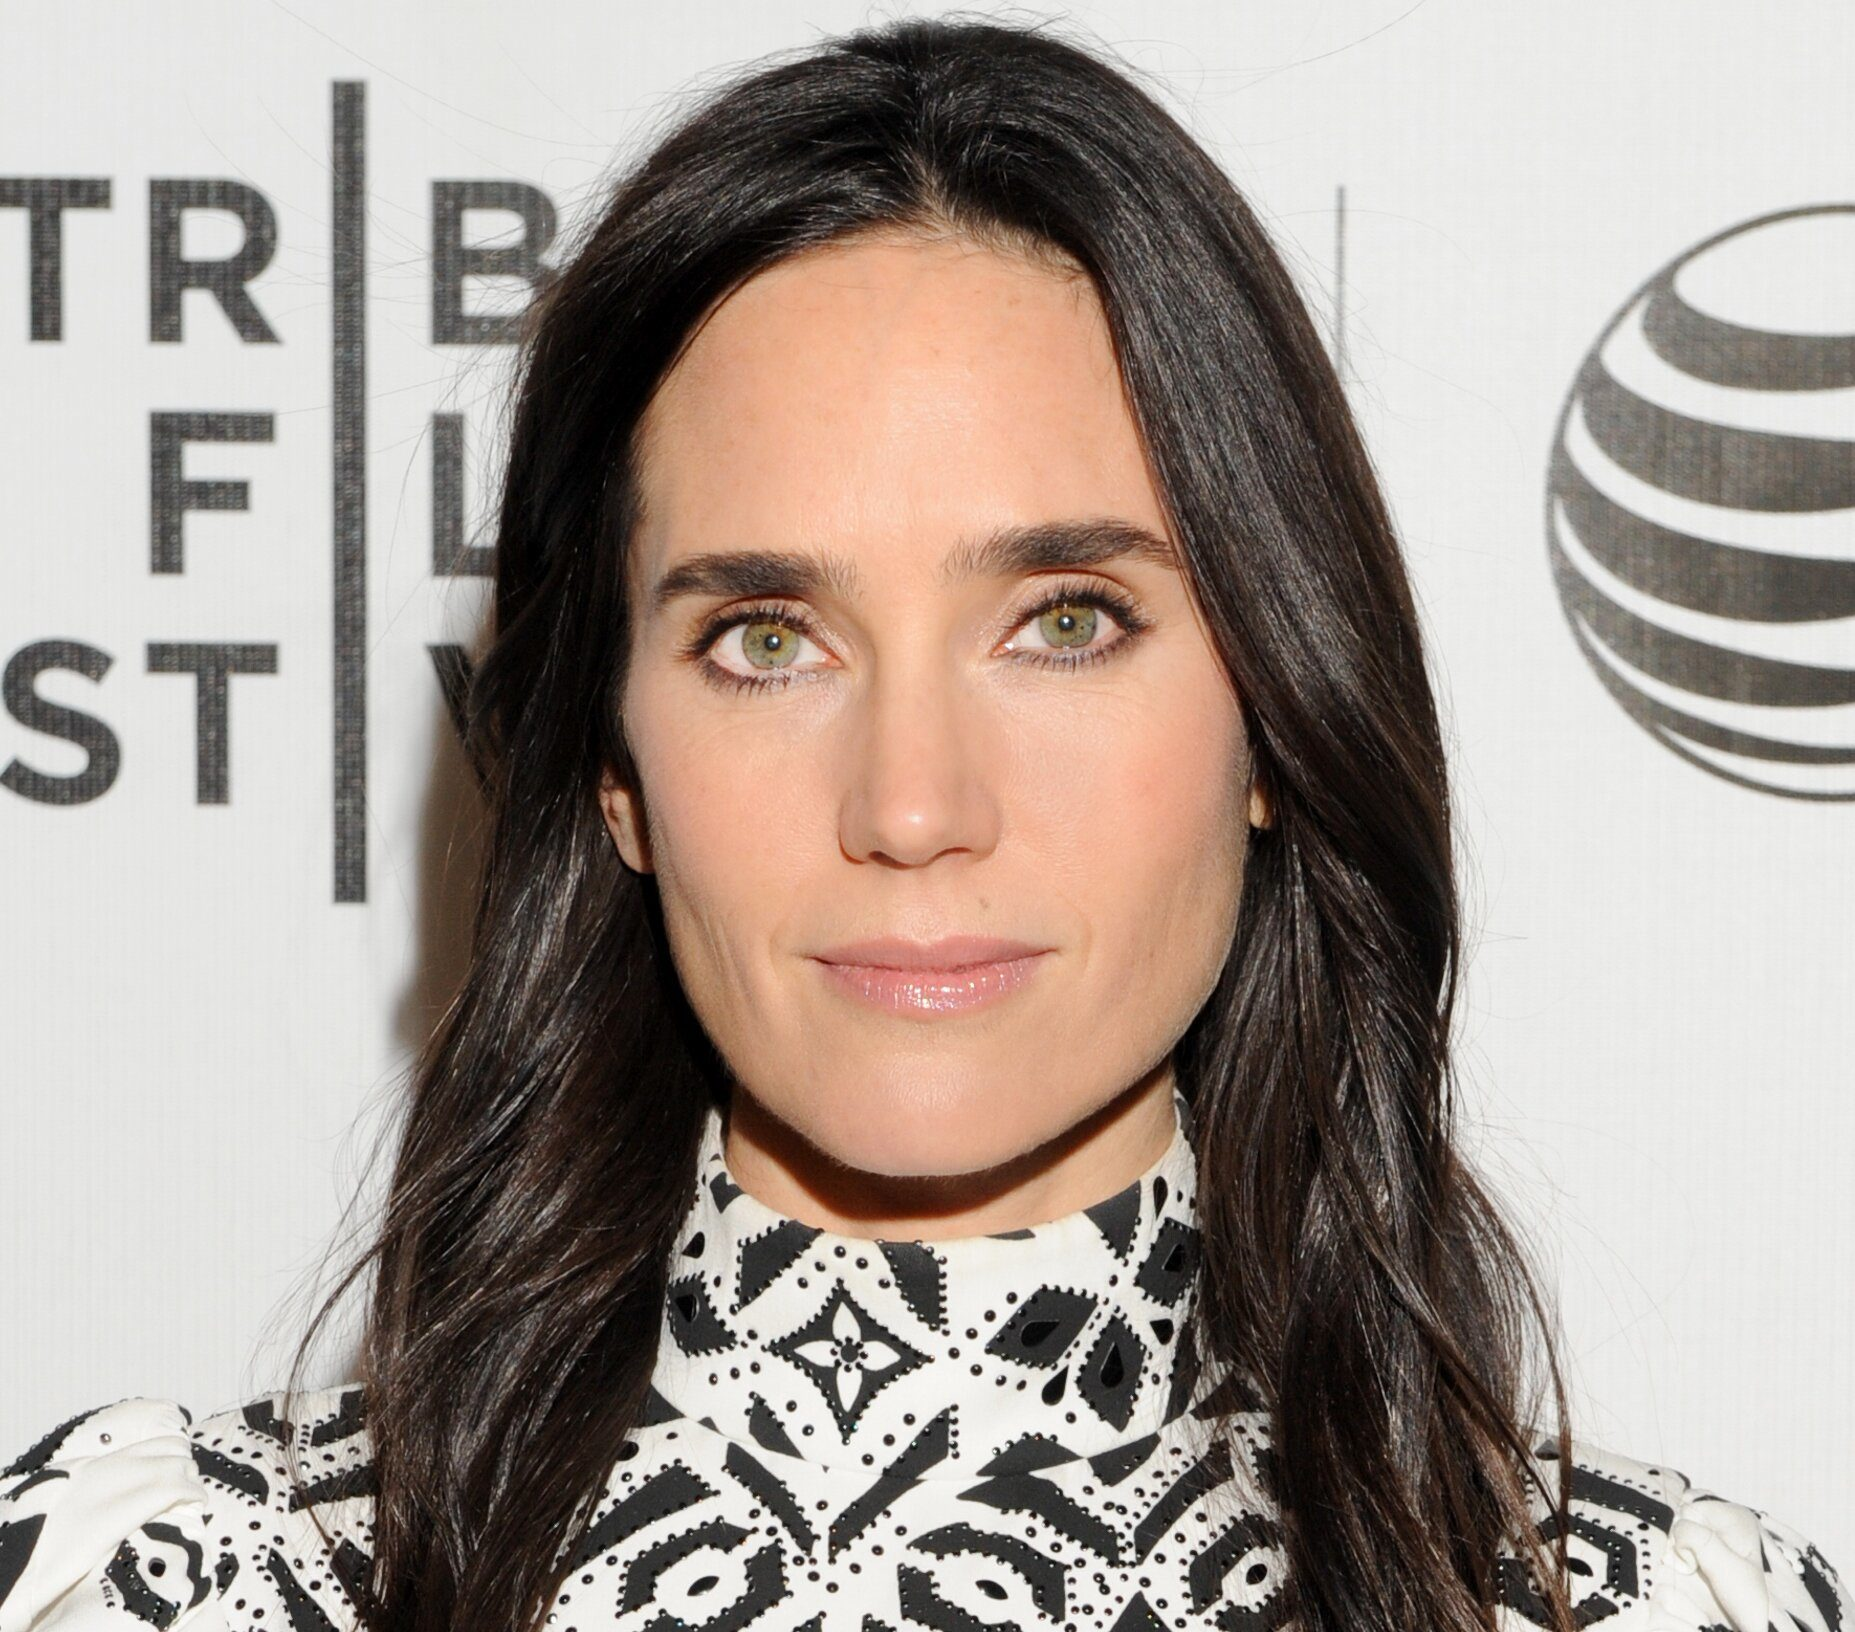 image 32 e1610029316385 20 Things You Probably Didn't Know About Jennifer Connelly